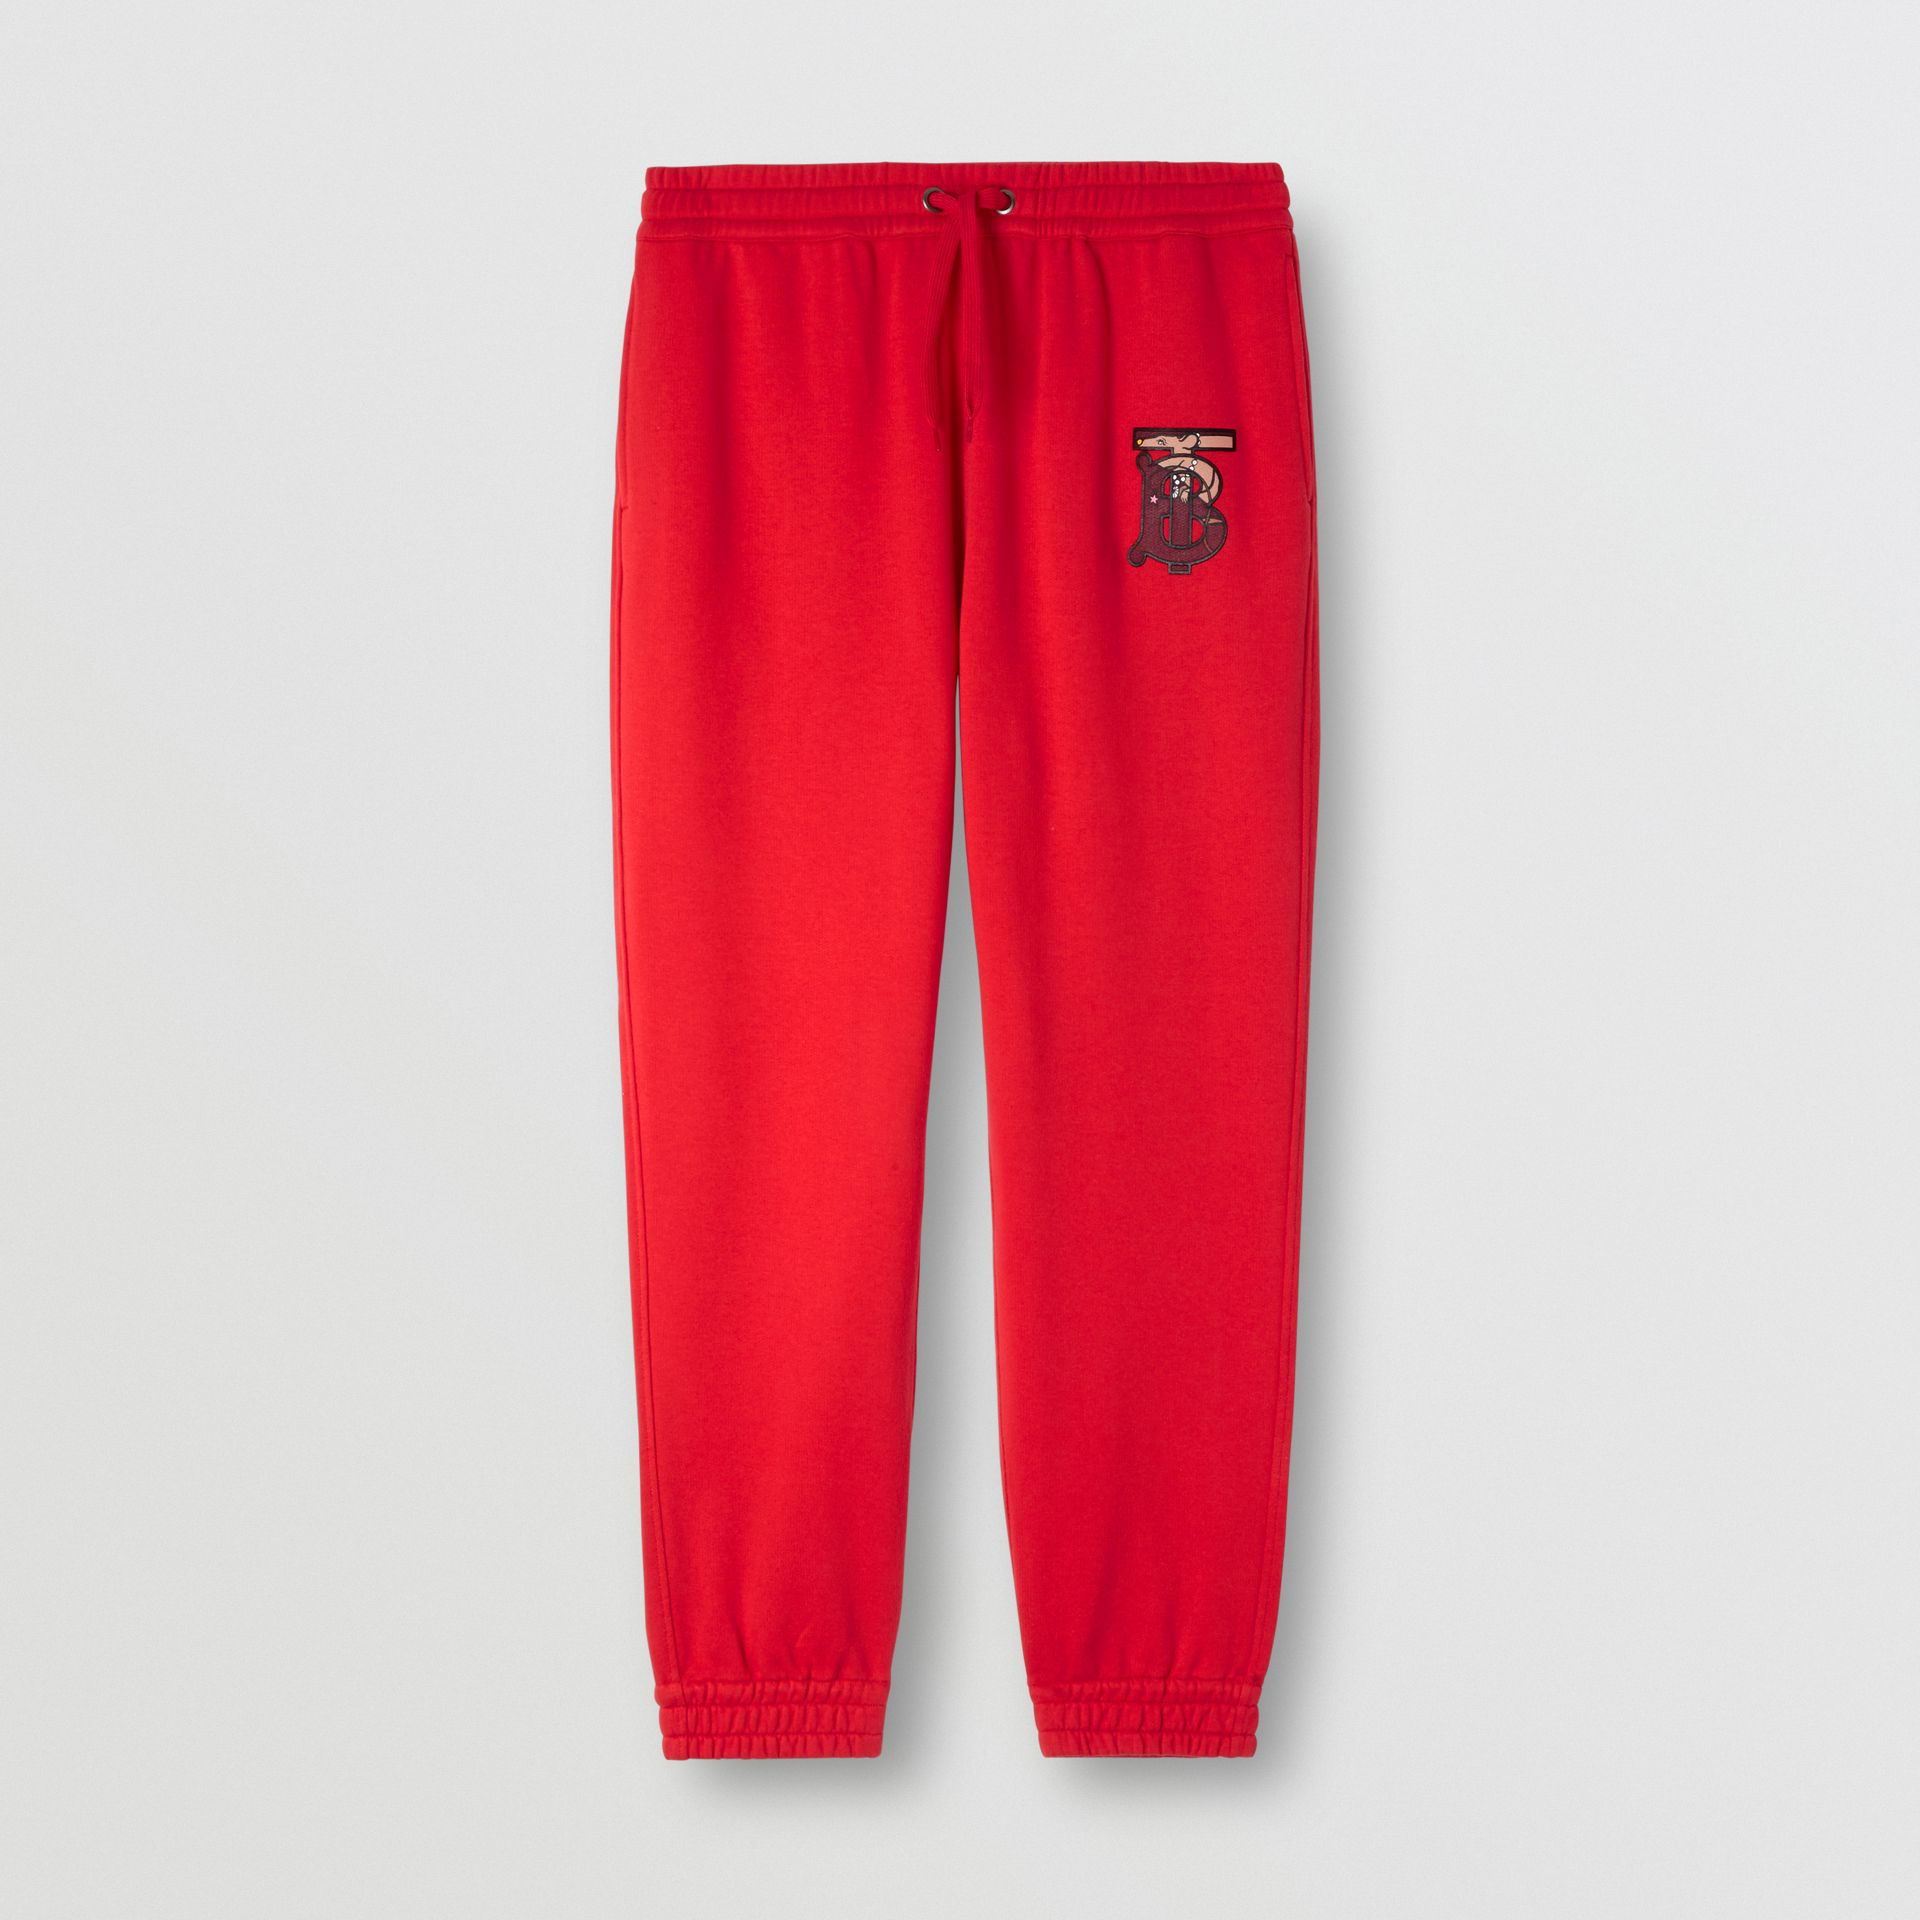 Monogram Motif Cotton Trackpants in Bright Red - Men | Burberry - gallery image 2